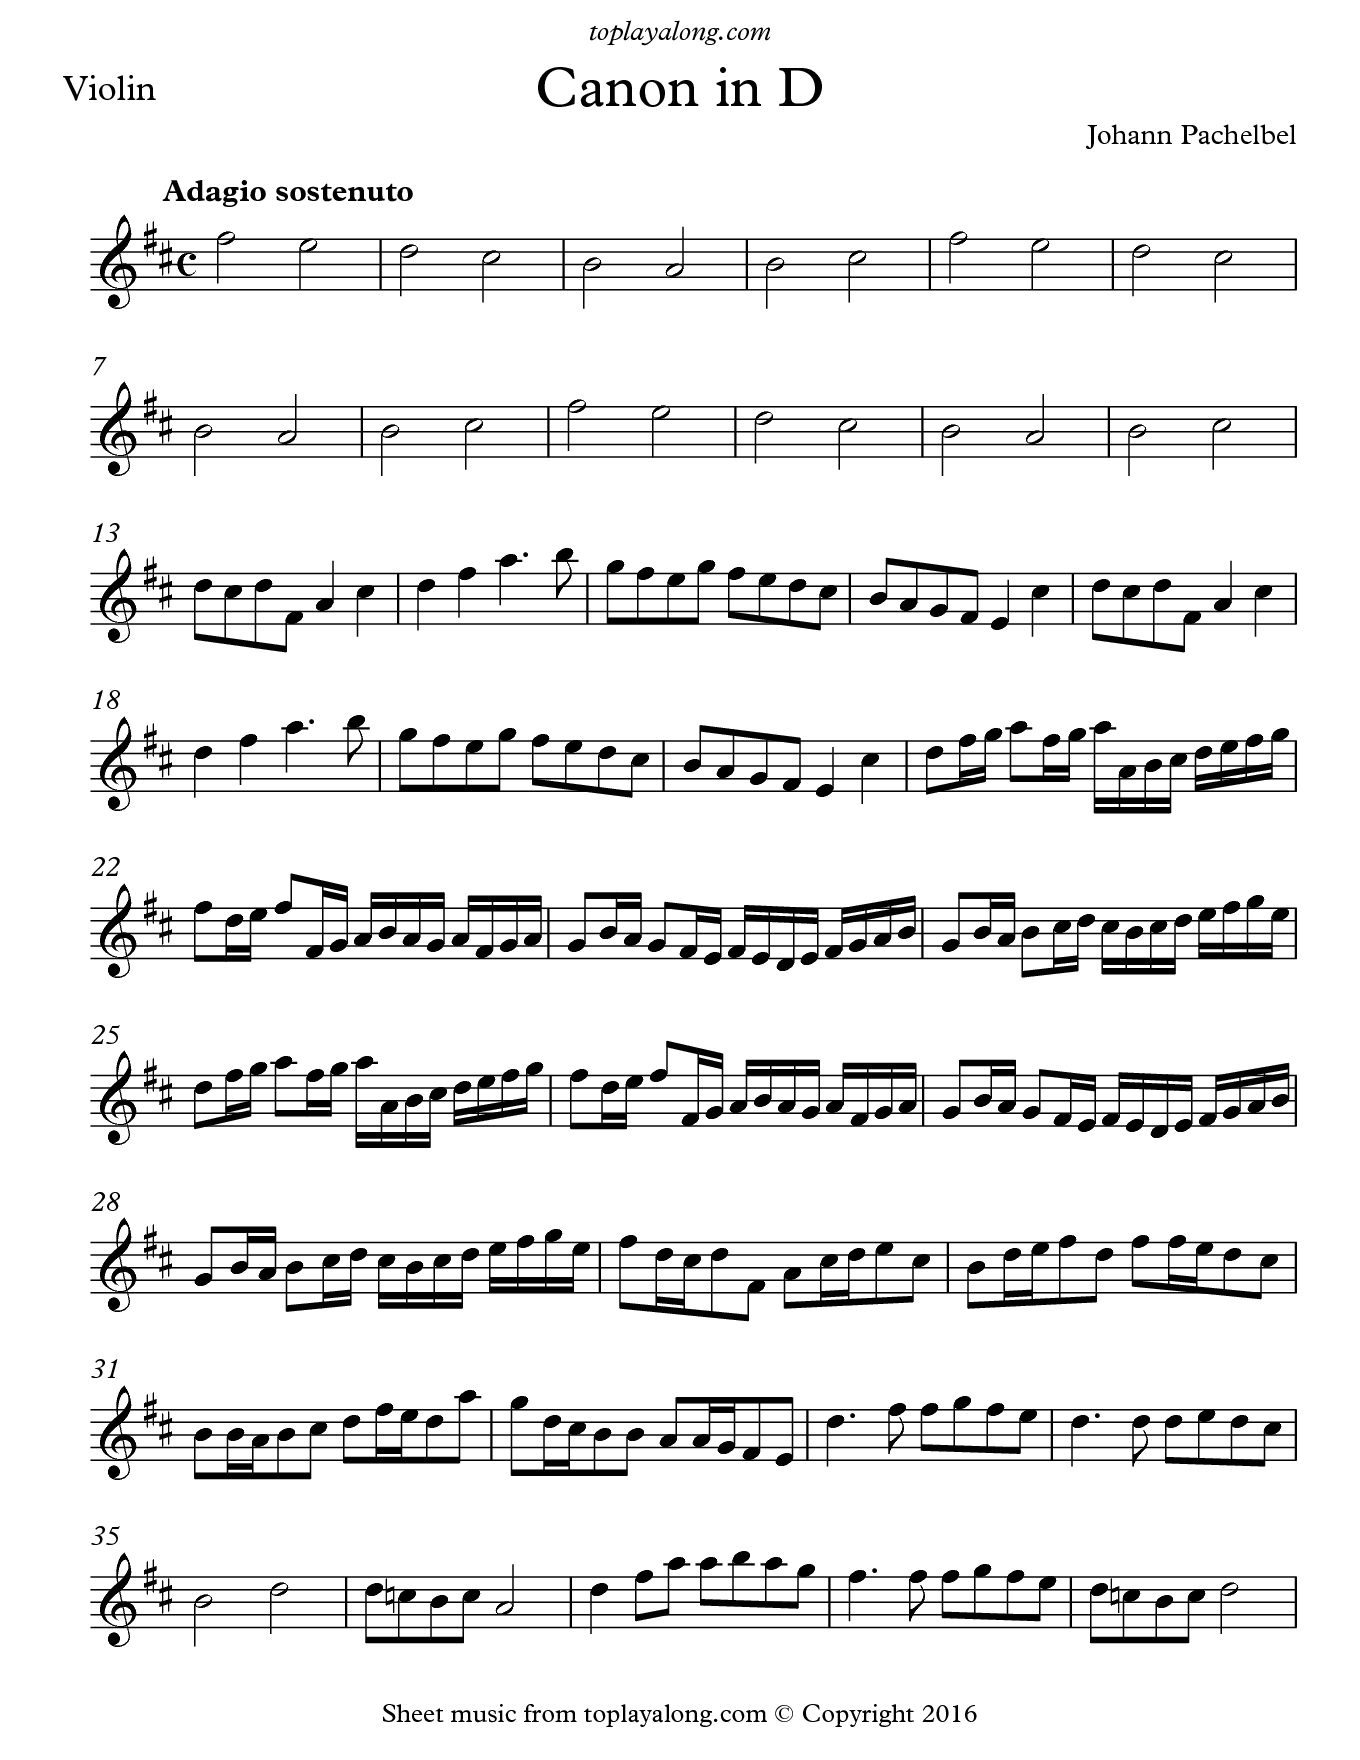 Canon in D by Pachelbel. Sheet music for Violin, page 1.